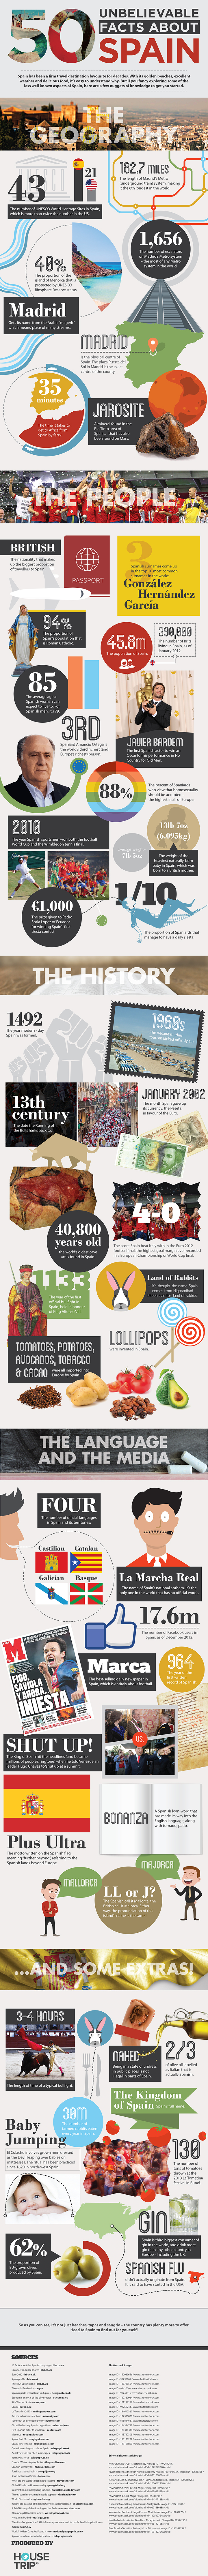 50 Unbelievable Facts About Spain by HouseTrip